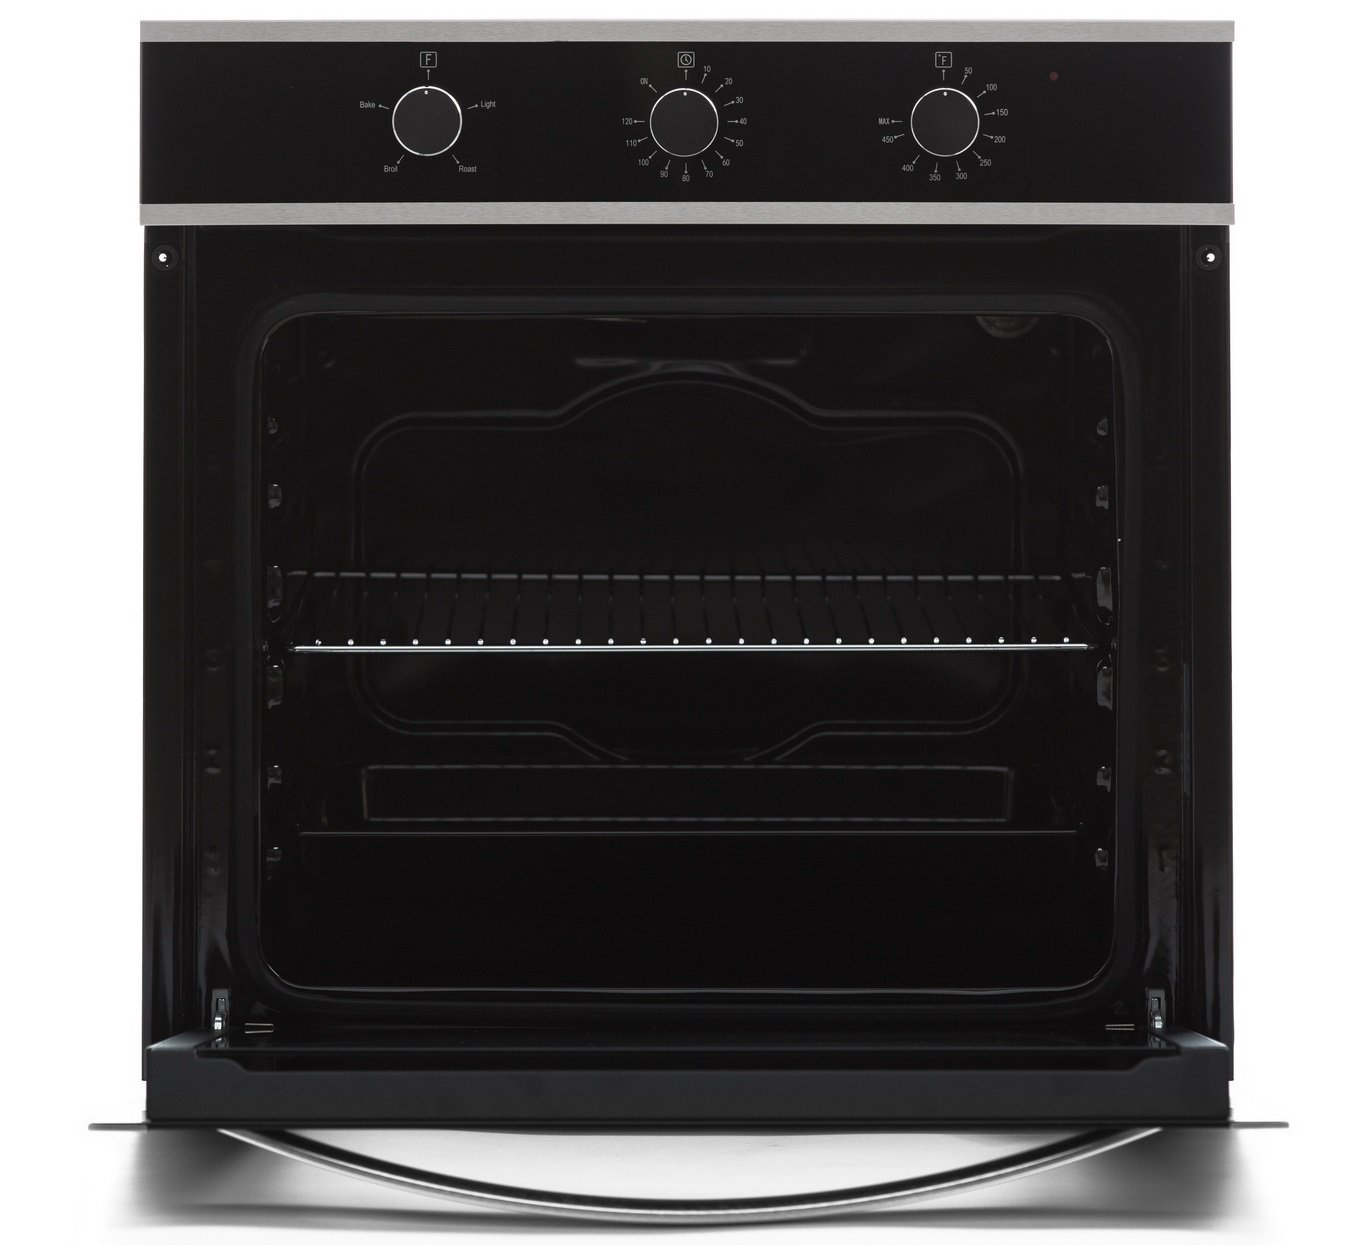 Hyaki 24'' Modern Style Stainless Steel Built in Electric Wall Oven 220V HYK-24WOX03 by Hyaki (Image #2)